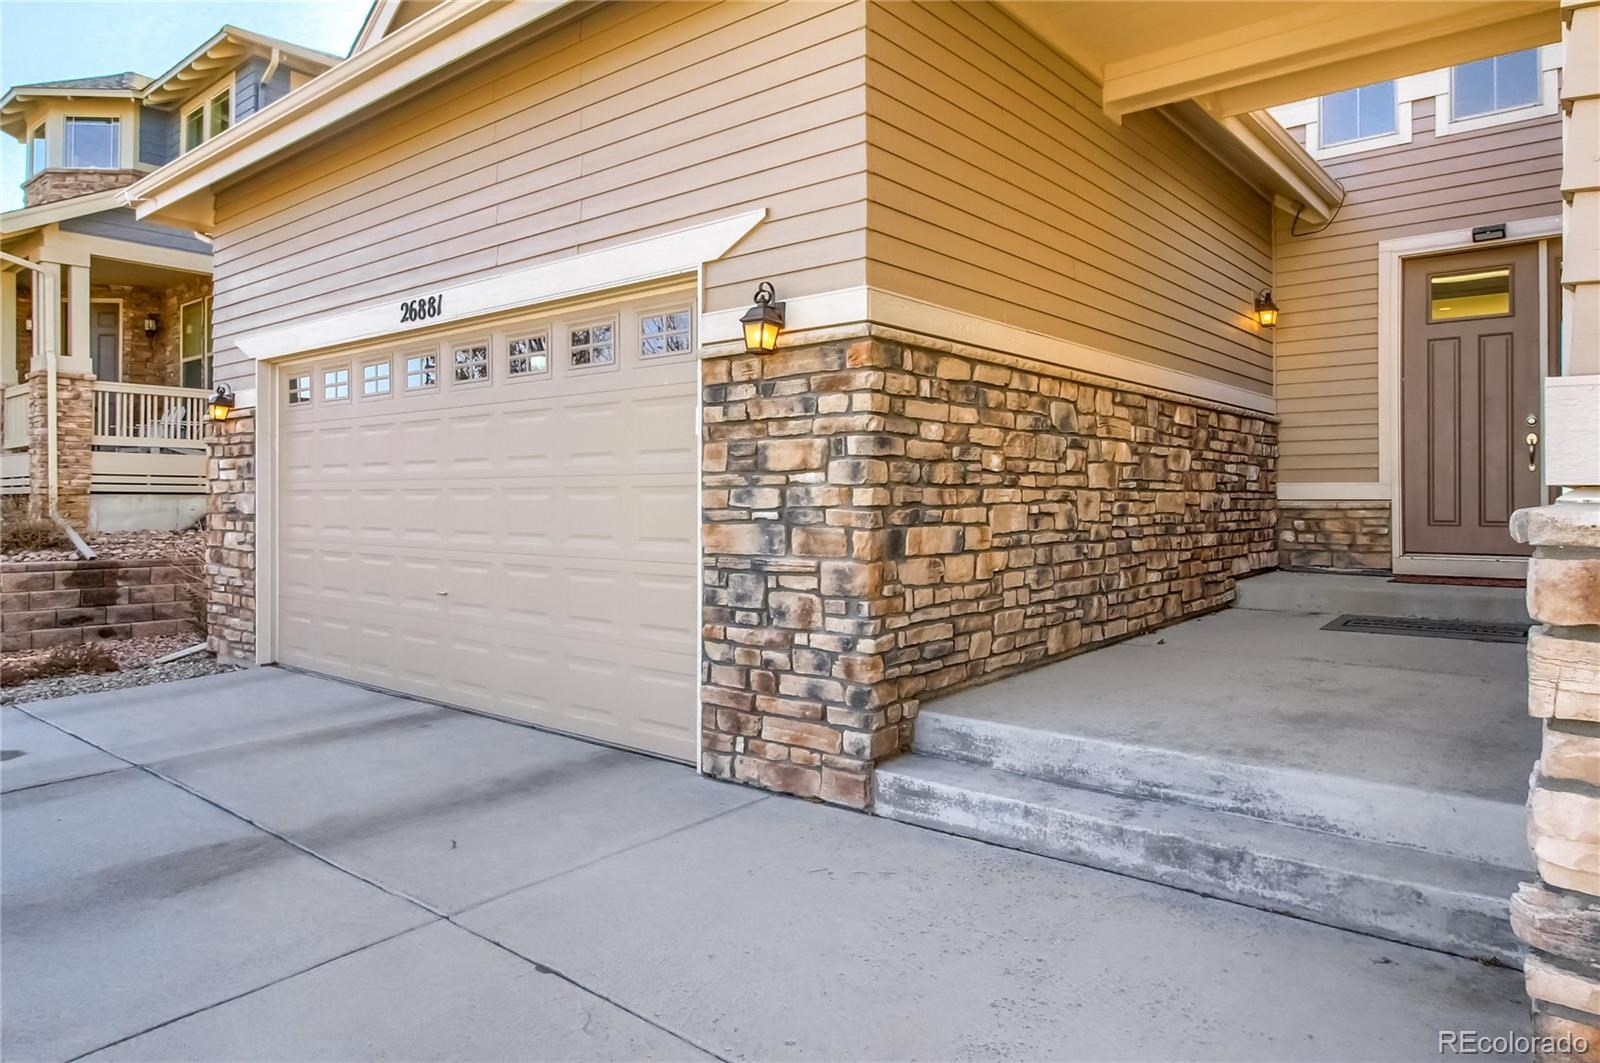 MLS# 7906413 - 3 - 26881 E Briarwood Circle, Aurora, CO 80016